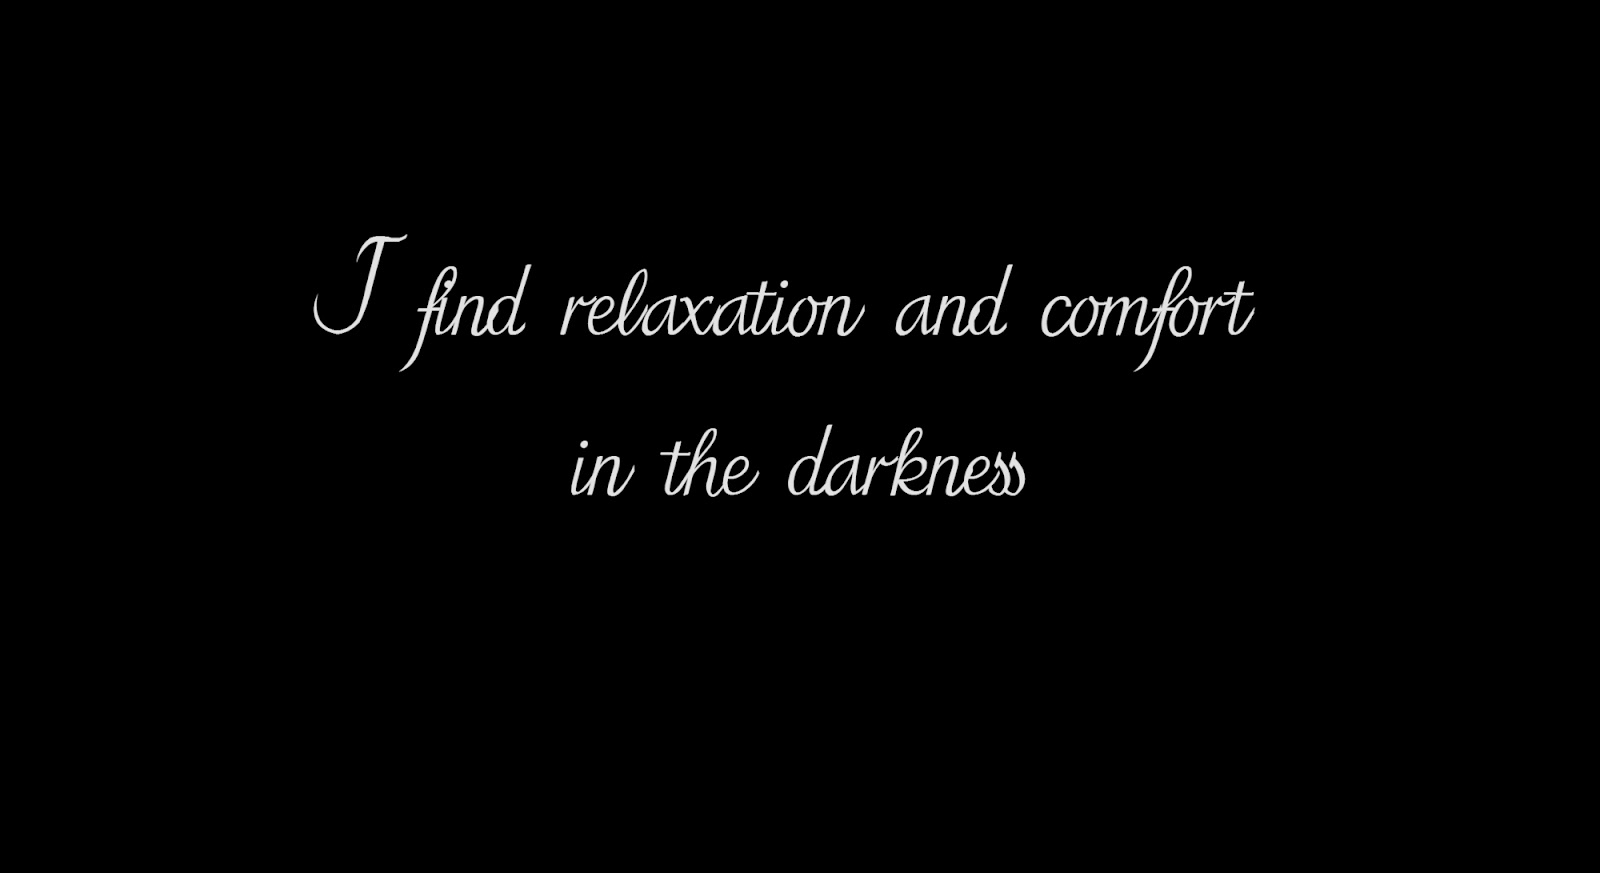 I find relaxation and comfort in the darkness